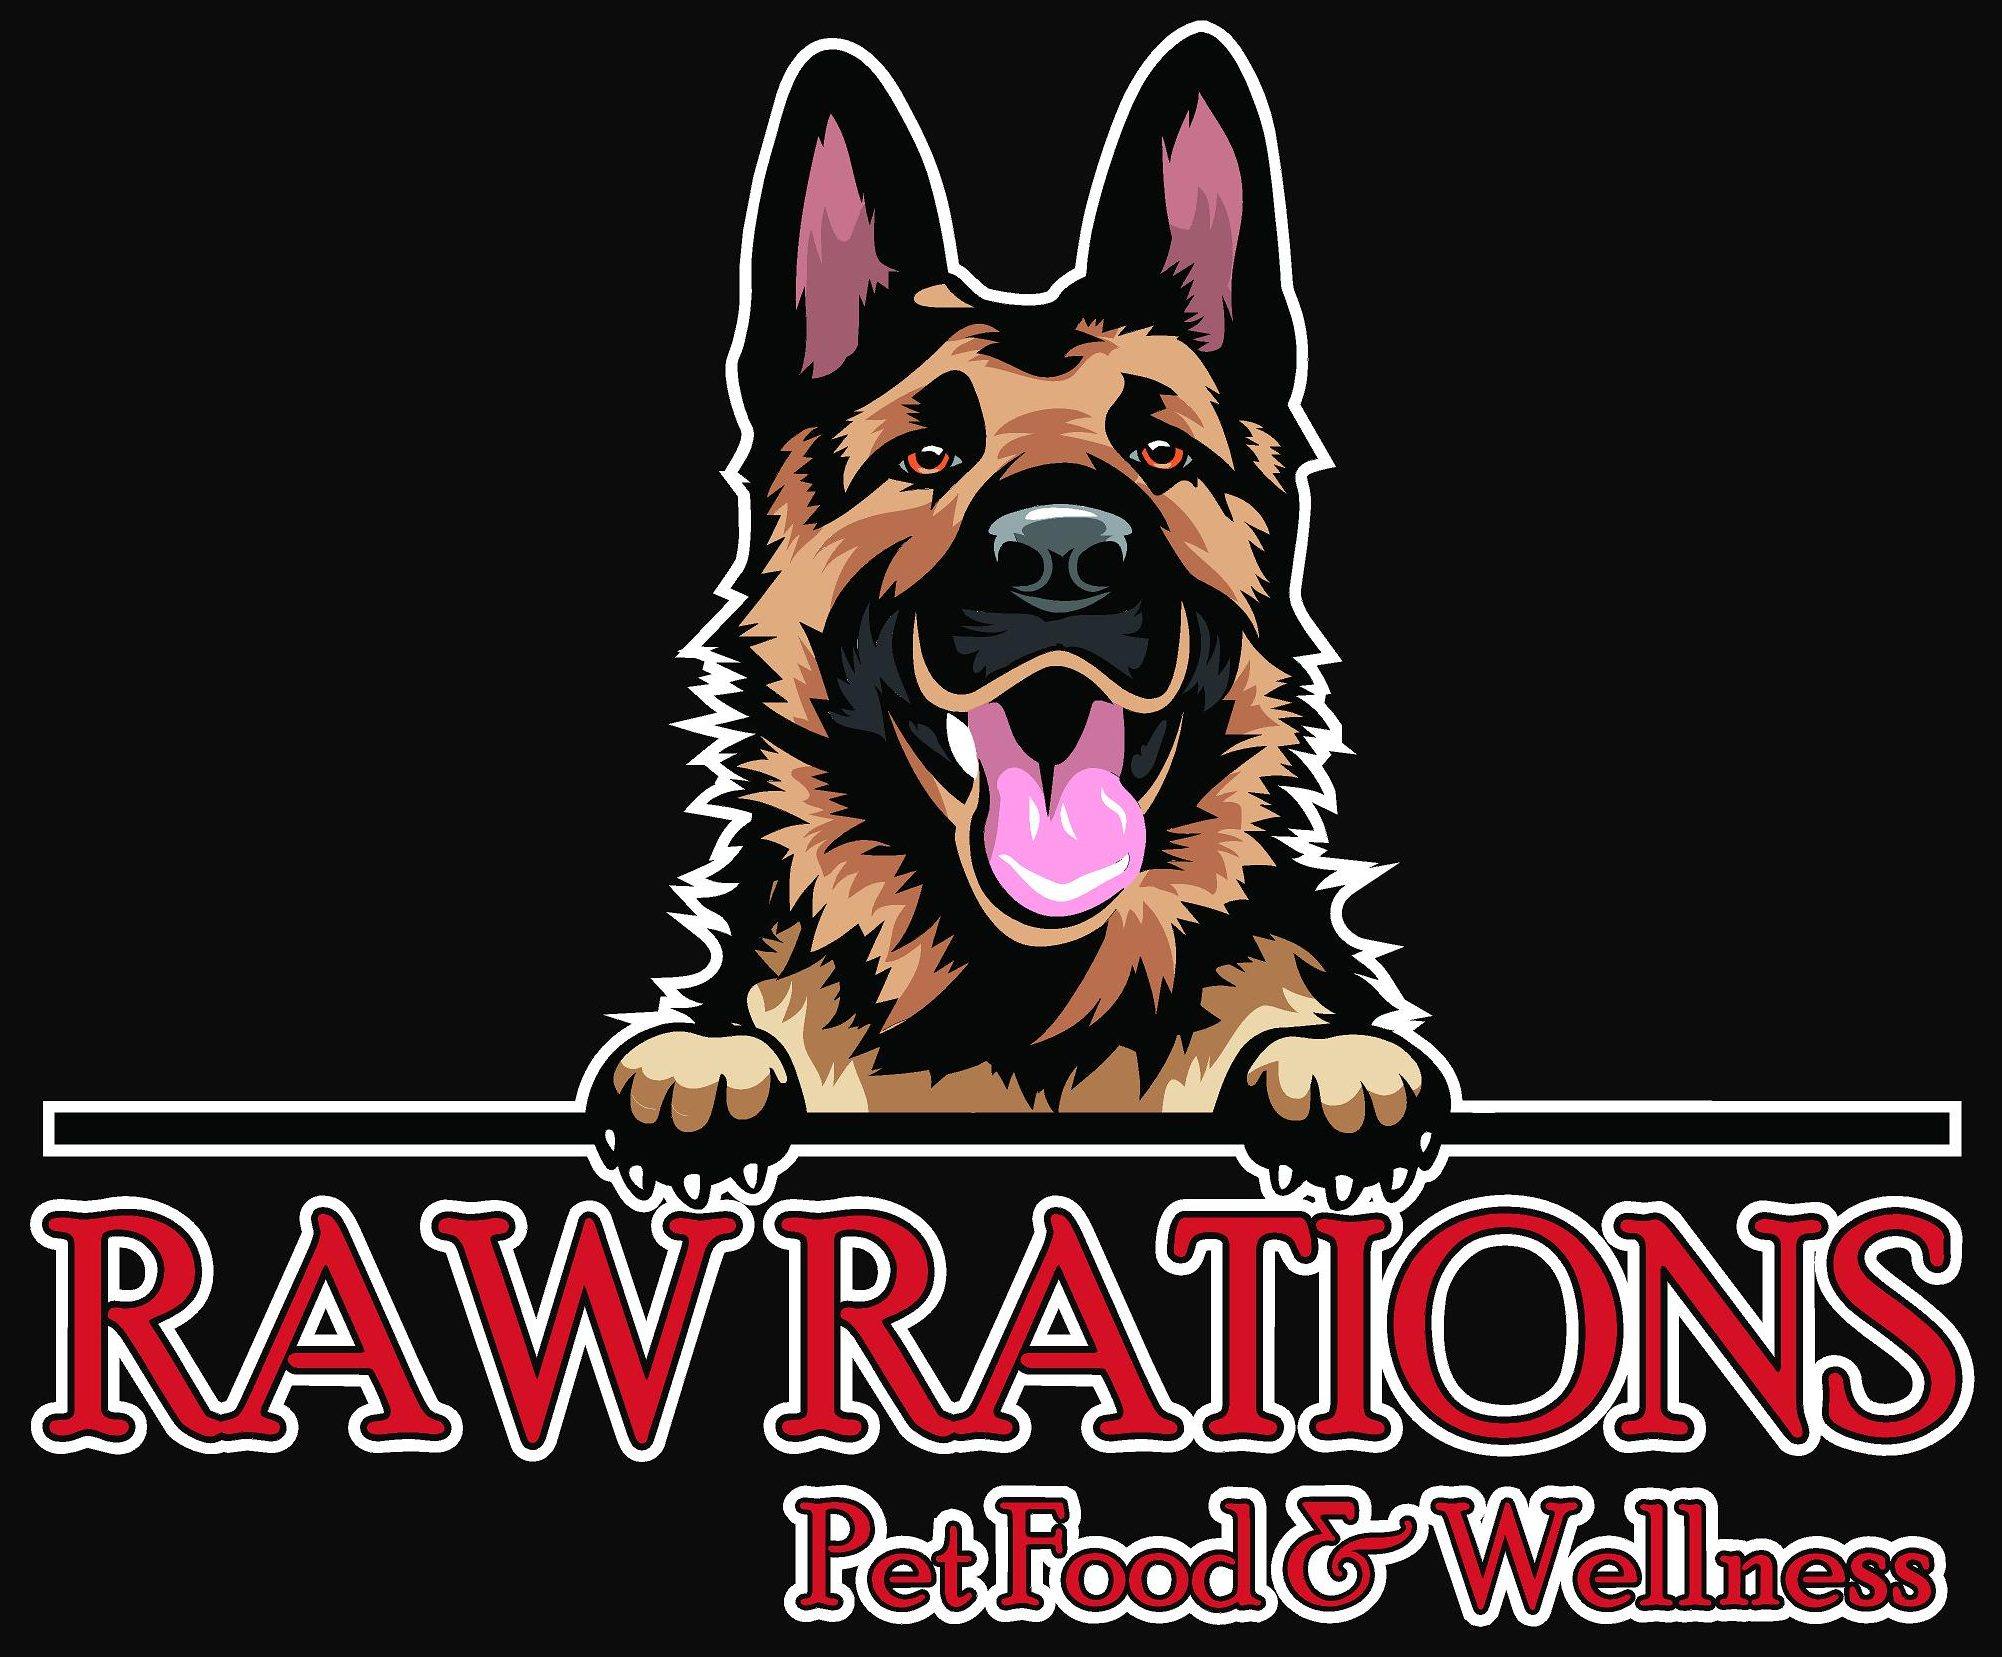 Raw Rations Pet Food and Wellness